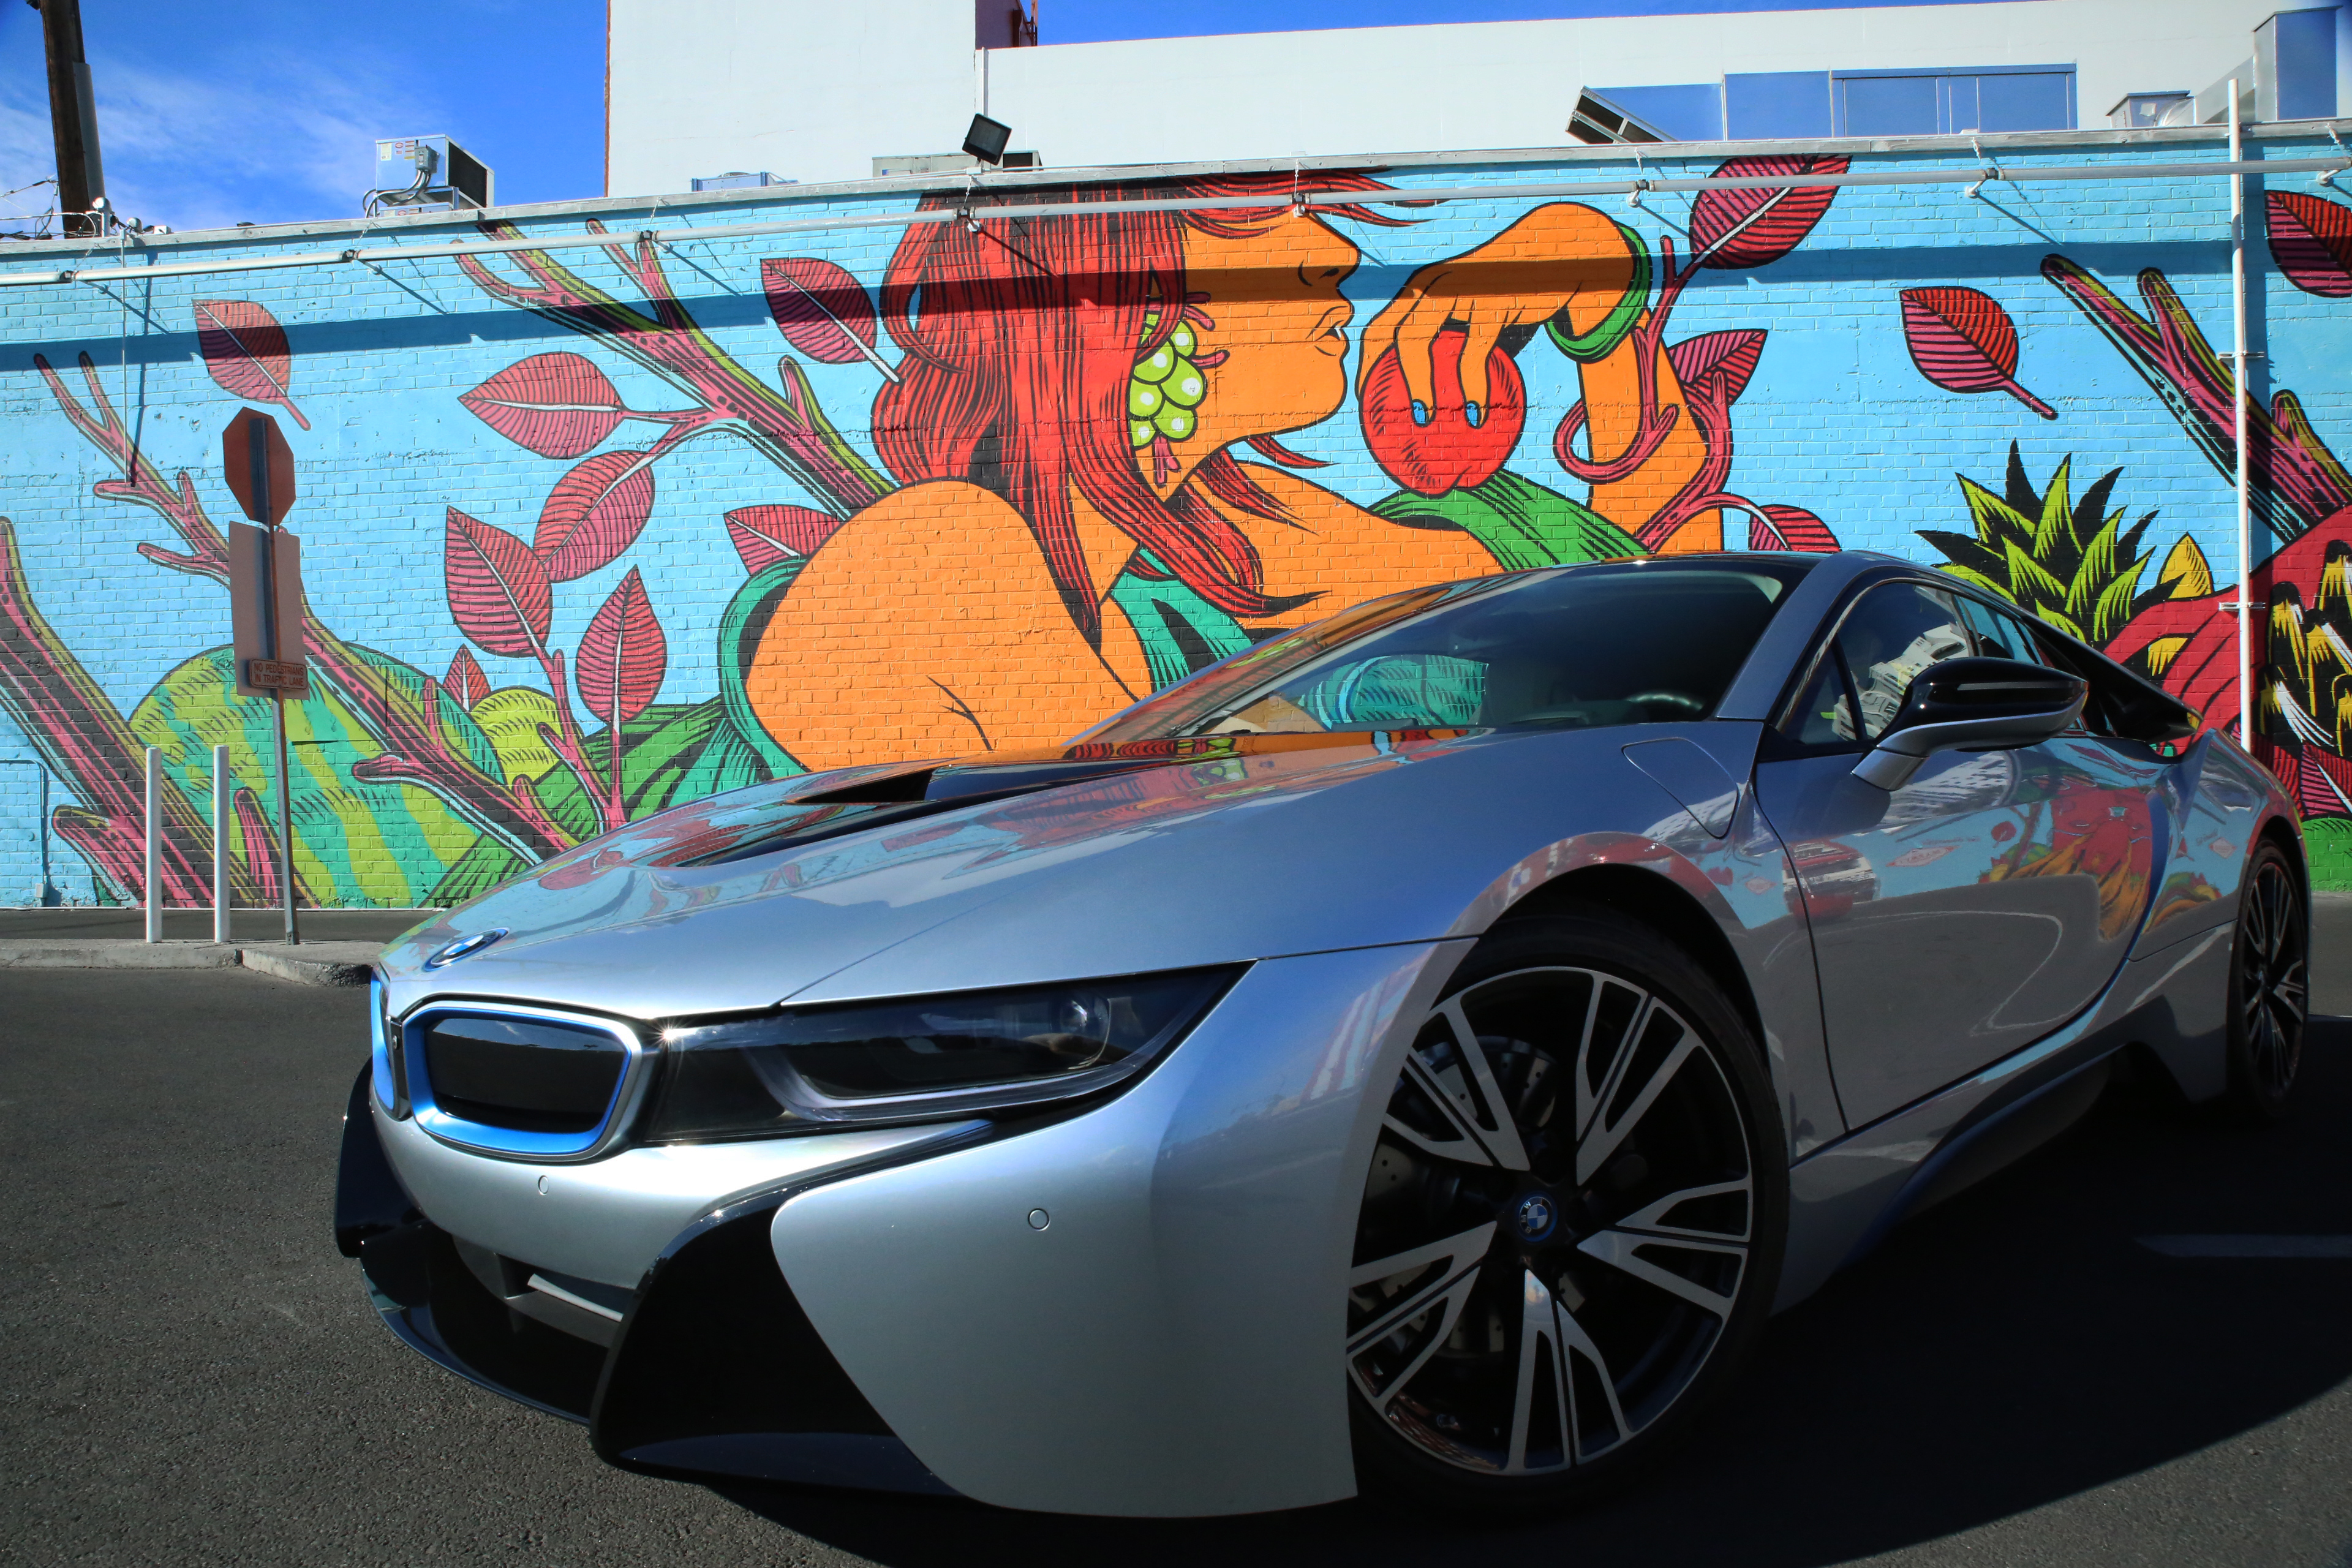 BMW Says That Itu0027ll Have A Total Of 25 Electrified Vehicles In Its Lineup  By 2025, With A Full Dozen Of Those Being Full Electric Cars.